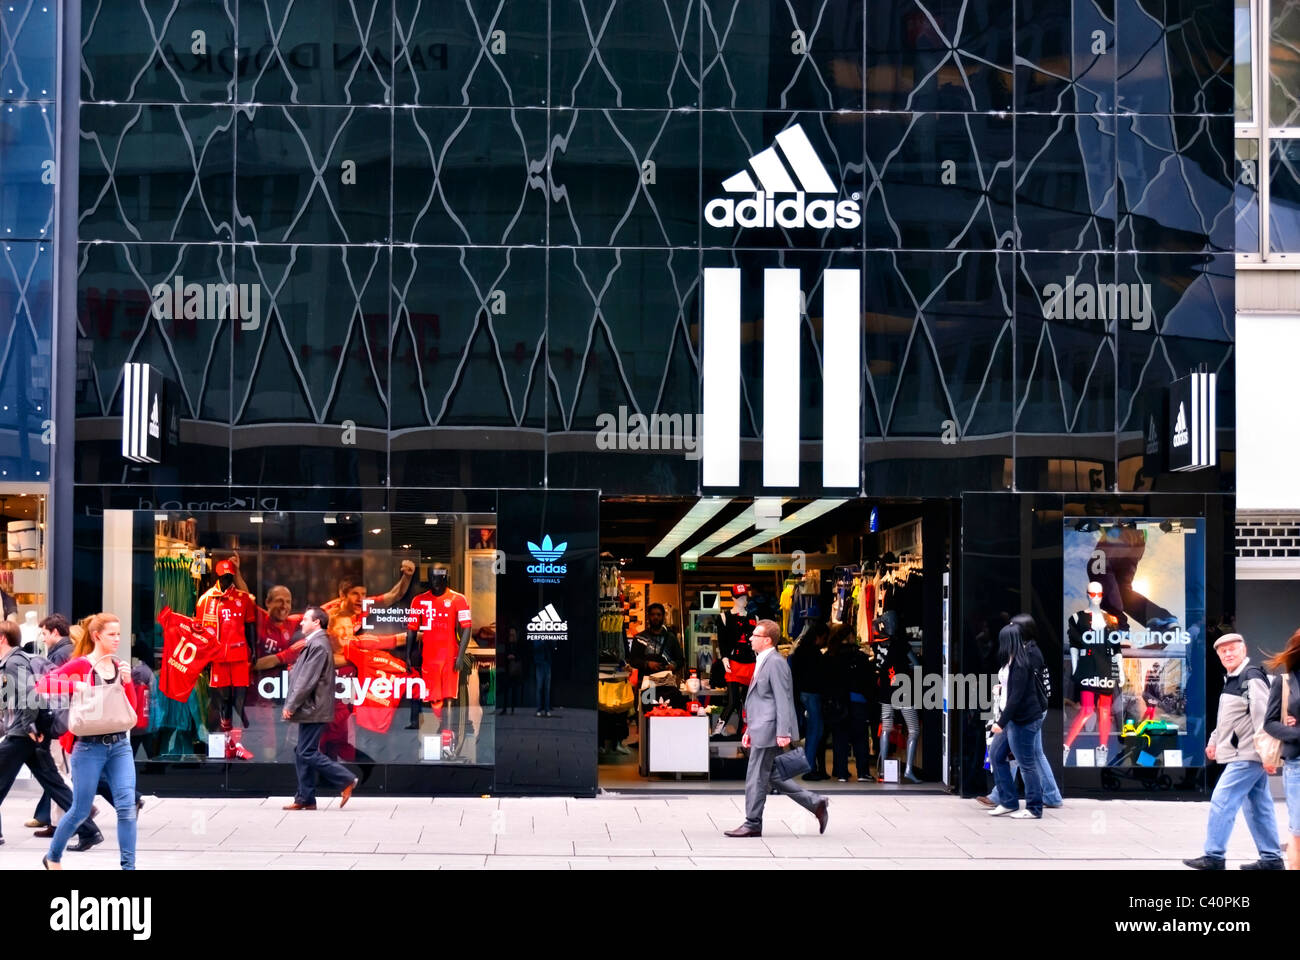 Adidas store in Frankfurt town center, Germany - Stock Image